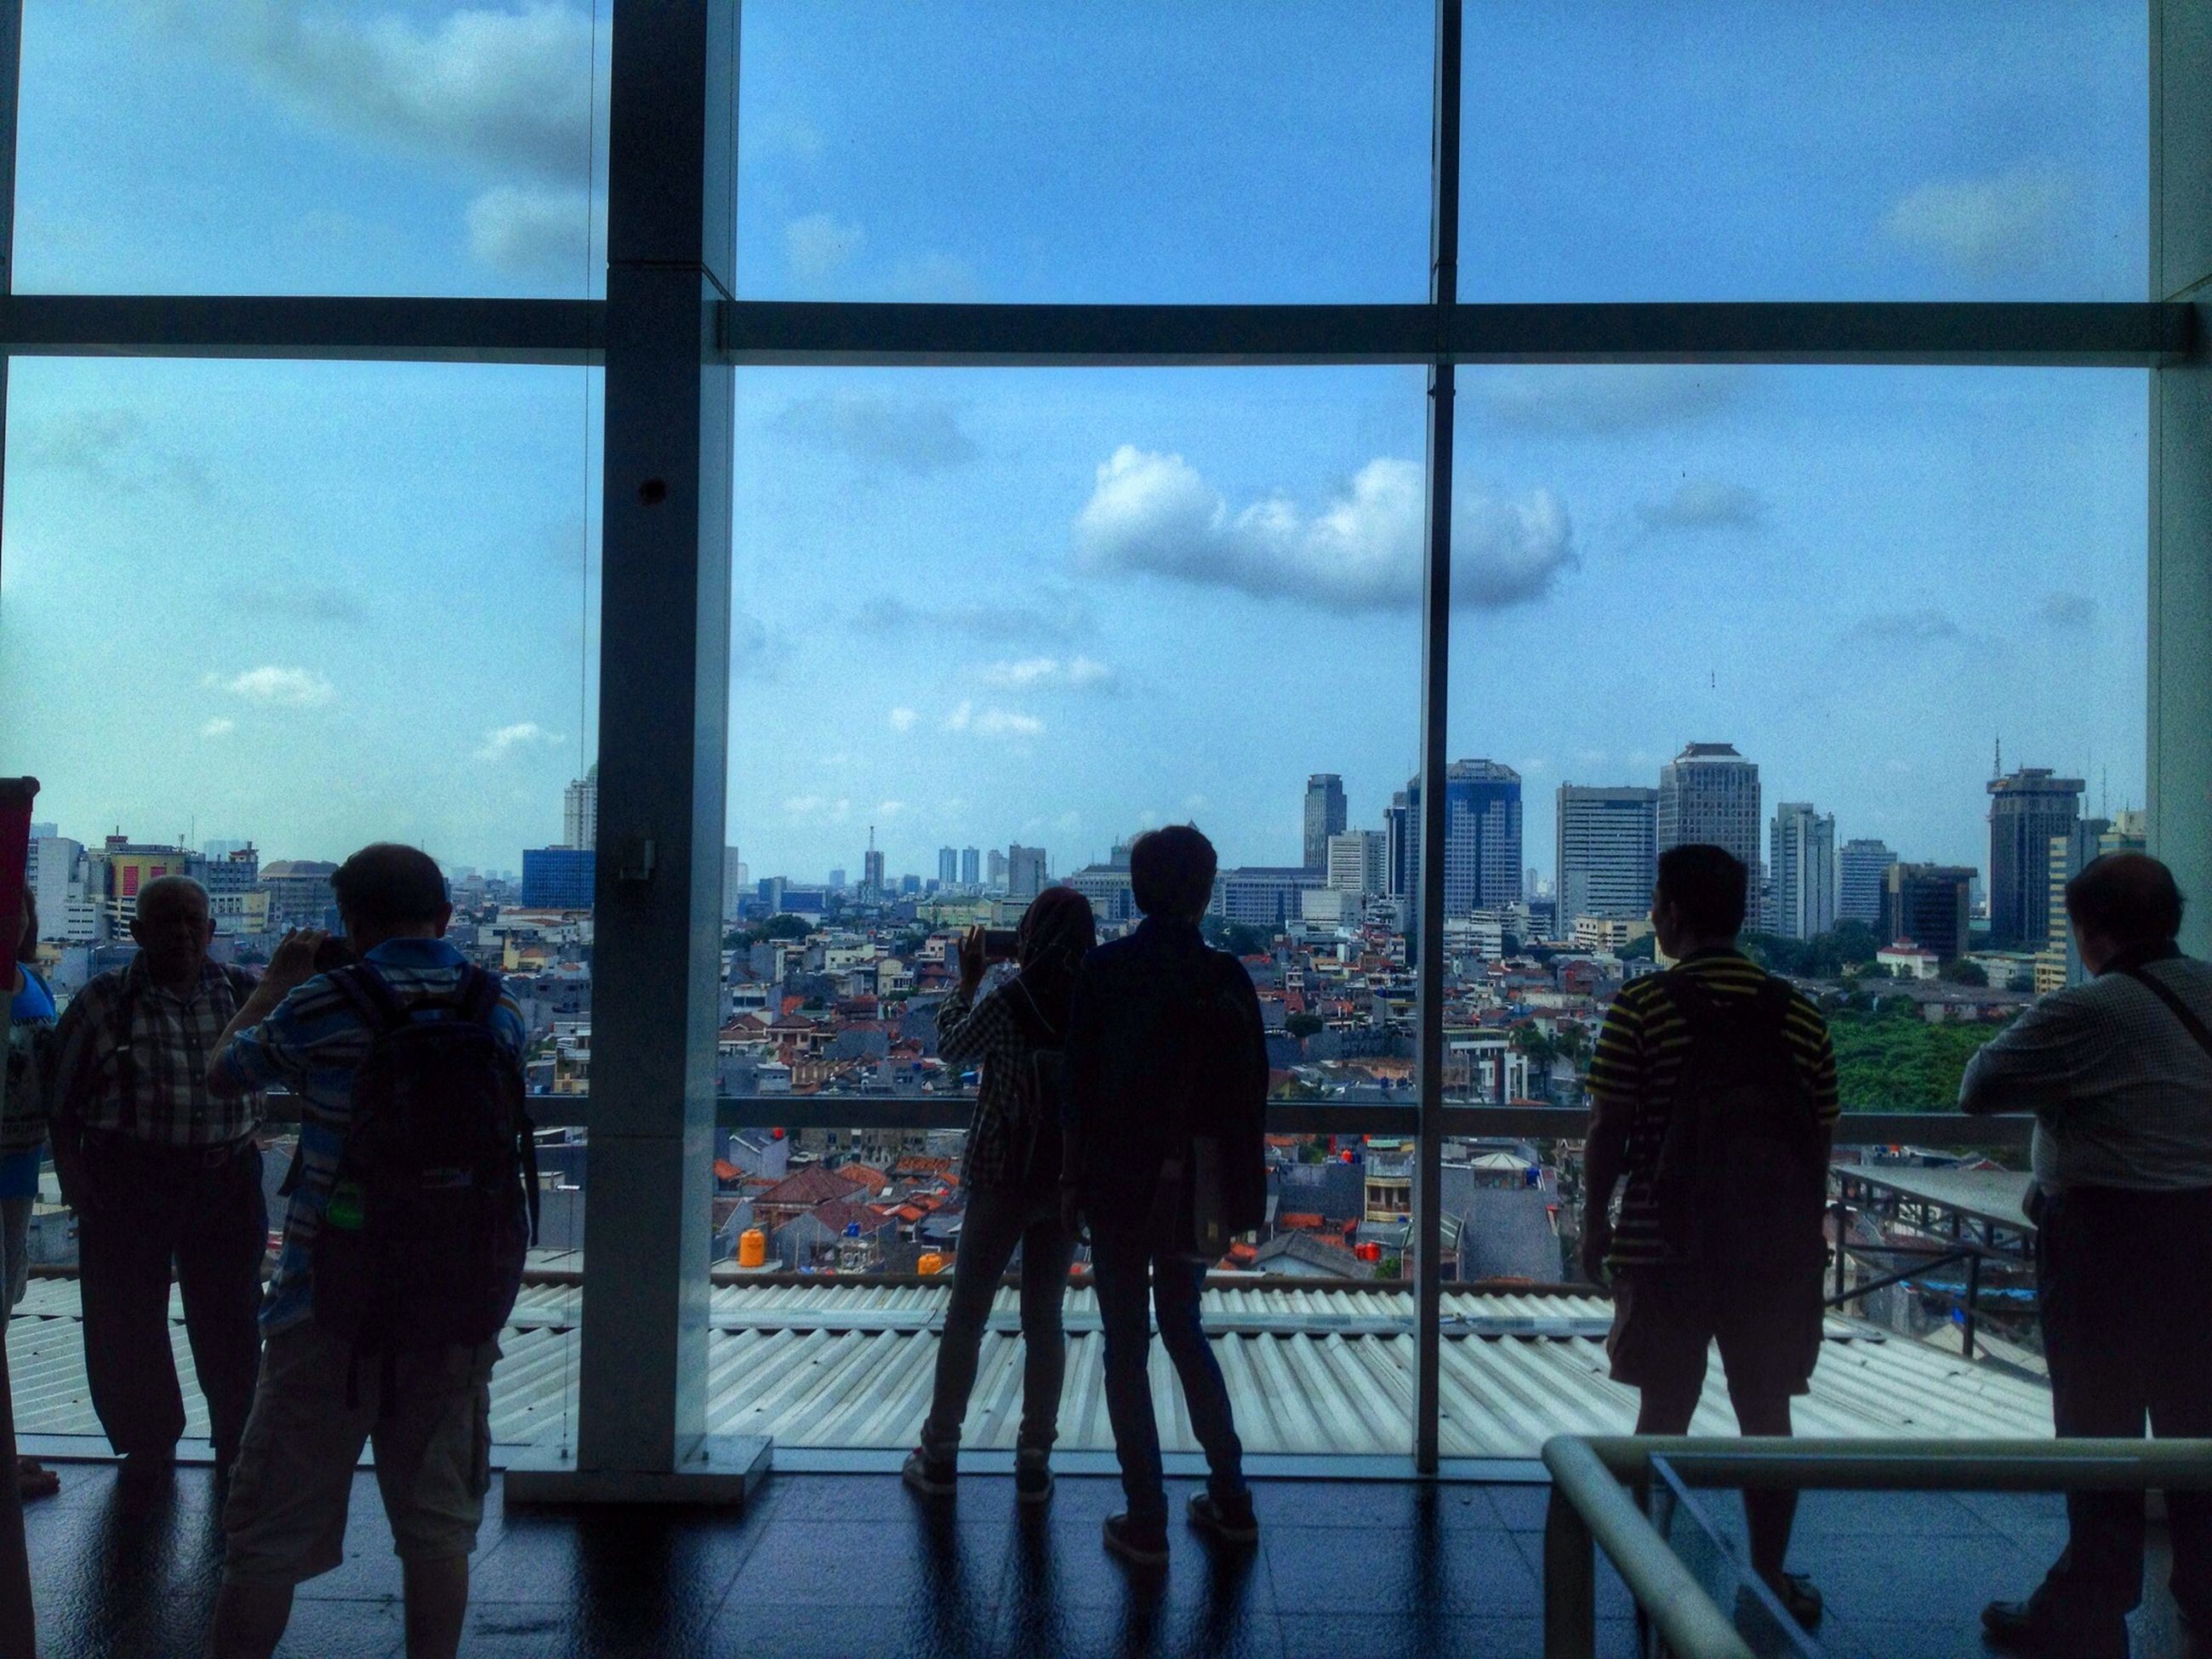 men, indoors, architecture, built structure, lifestyles, silhouette, sky, city, person, glass - material, rear view, standing, building exterior, leisure activity, cloud - sky, transparent, city life, window, togetherness